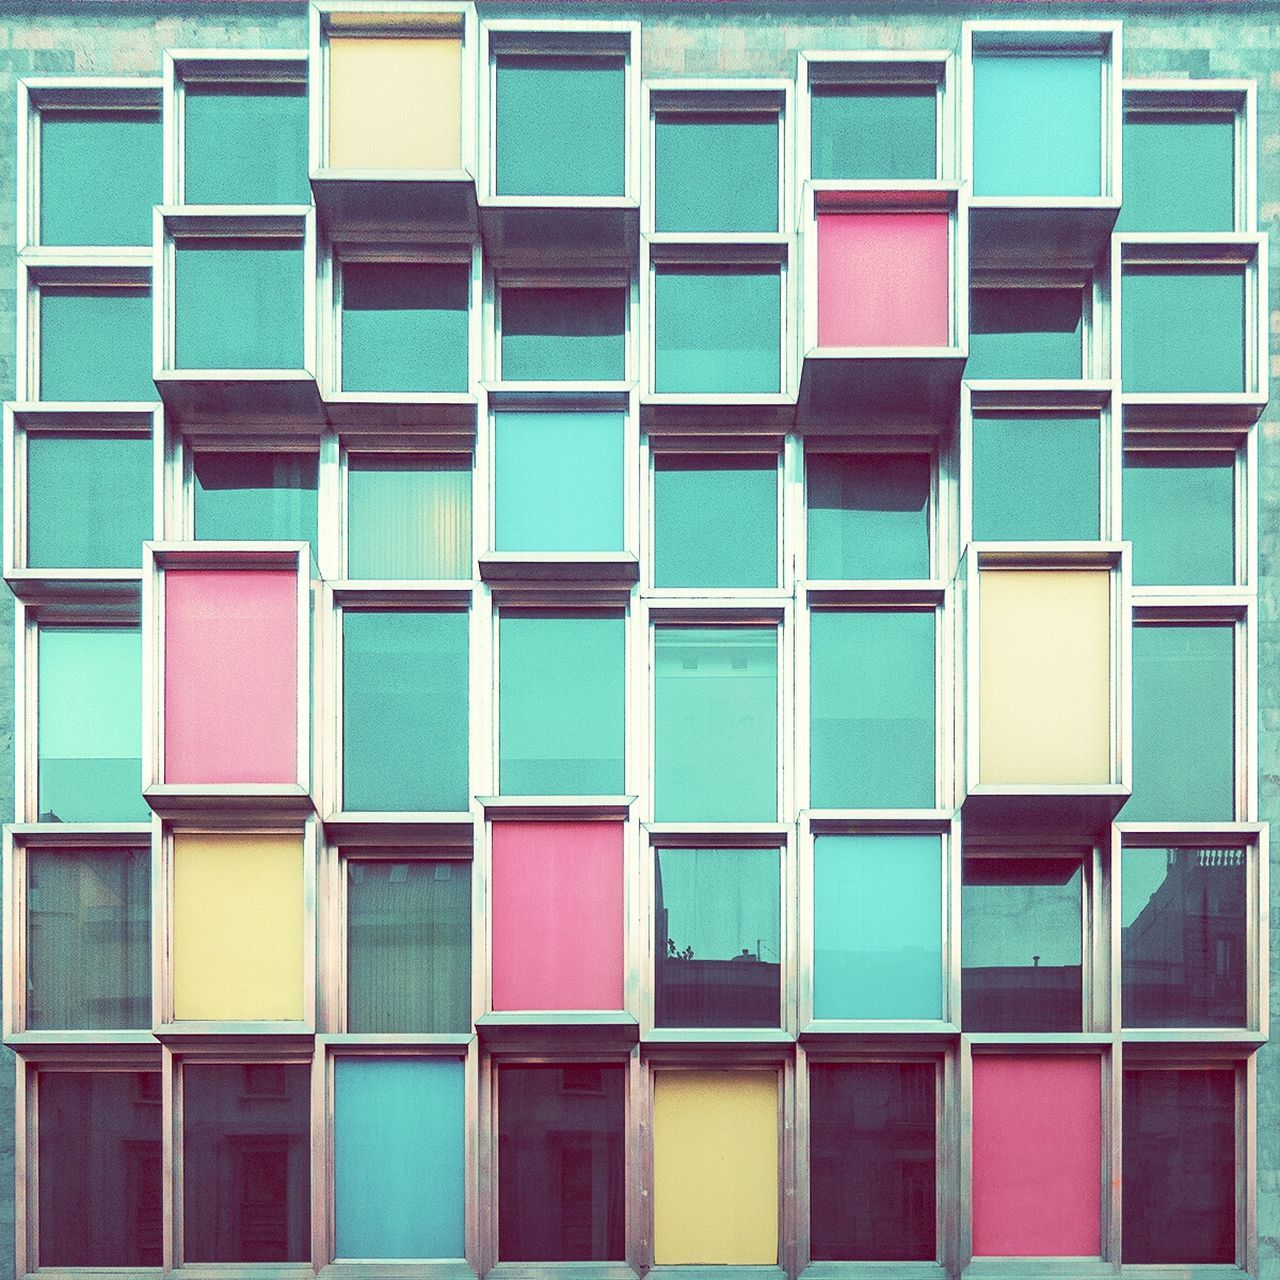 Excited mondrian | Mondrian excitado Architecture Straightfacade EyeEm Best Shots - Architecture Glass